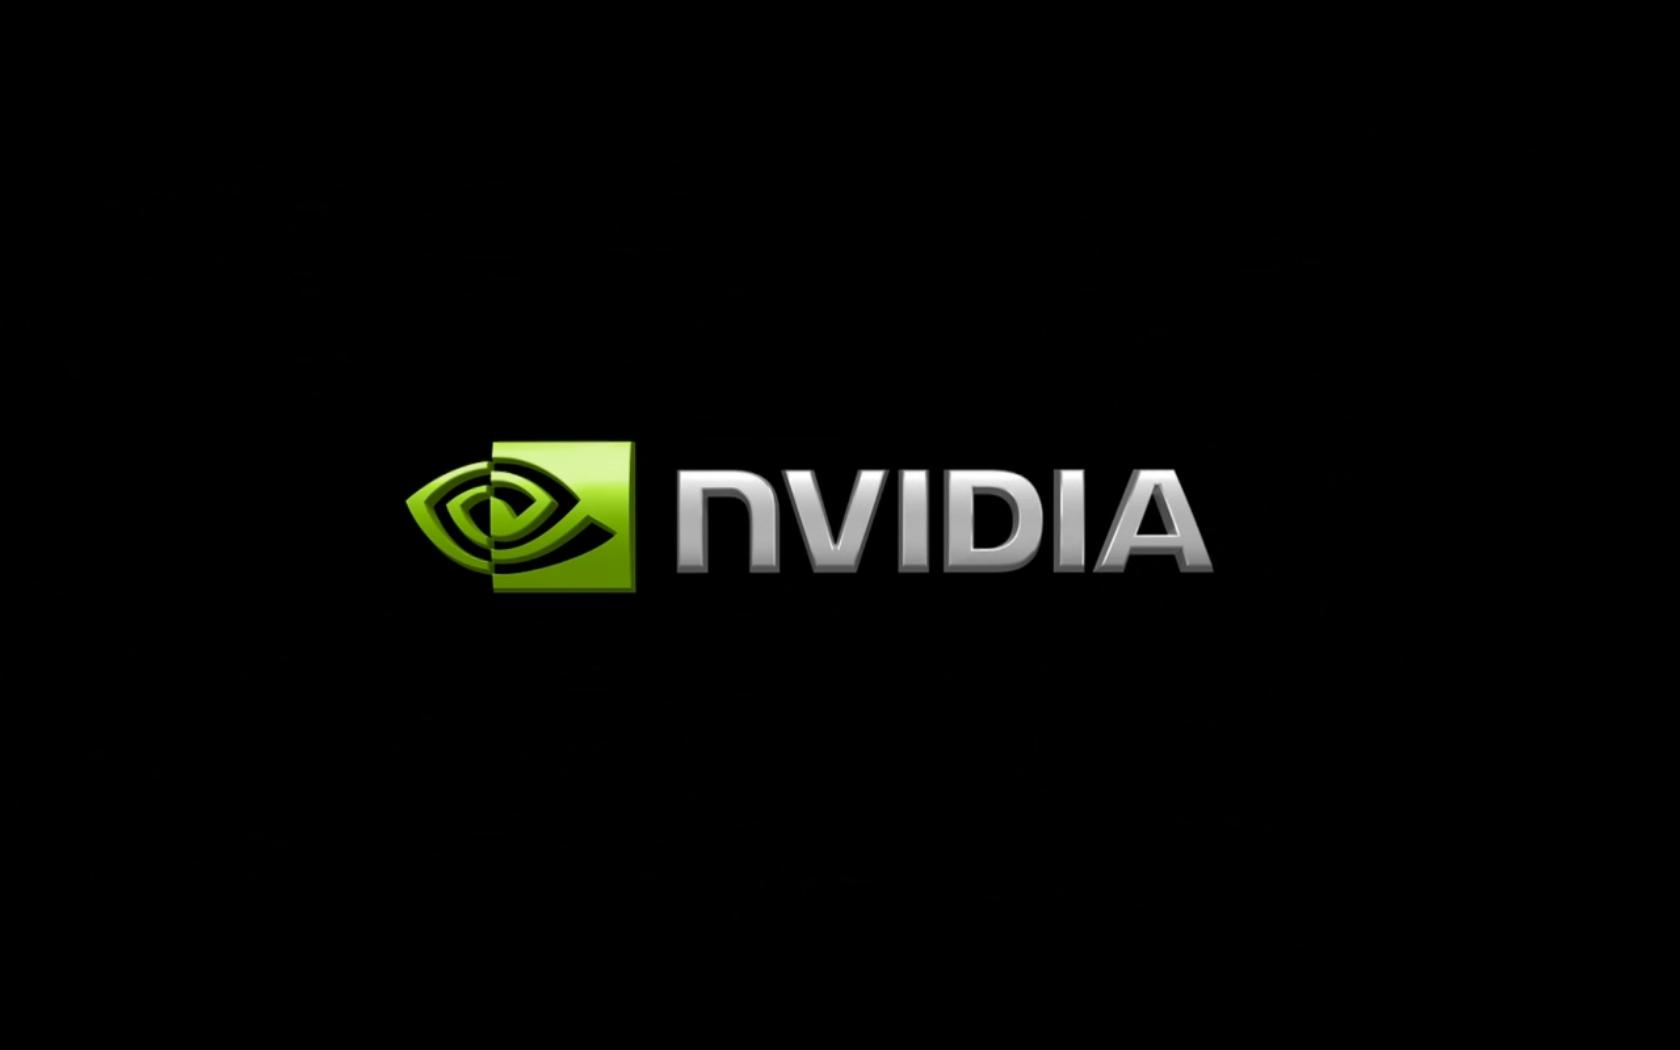 Nvidia Announces GeForce Now Cloud Gaming Service for PC